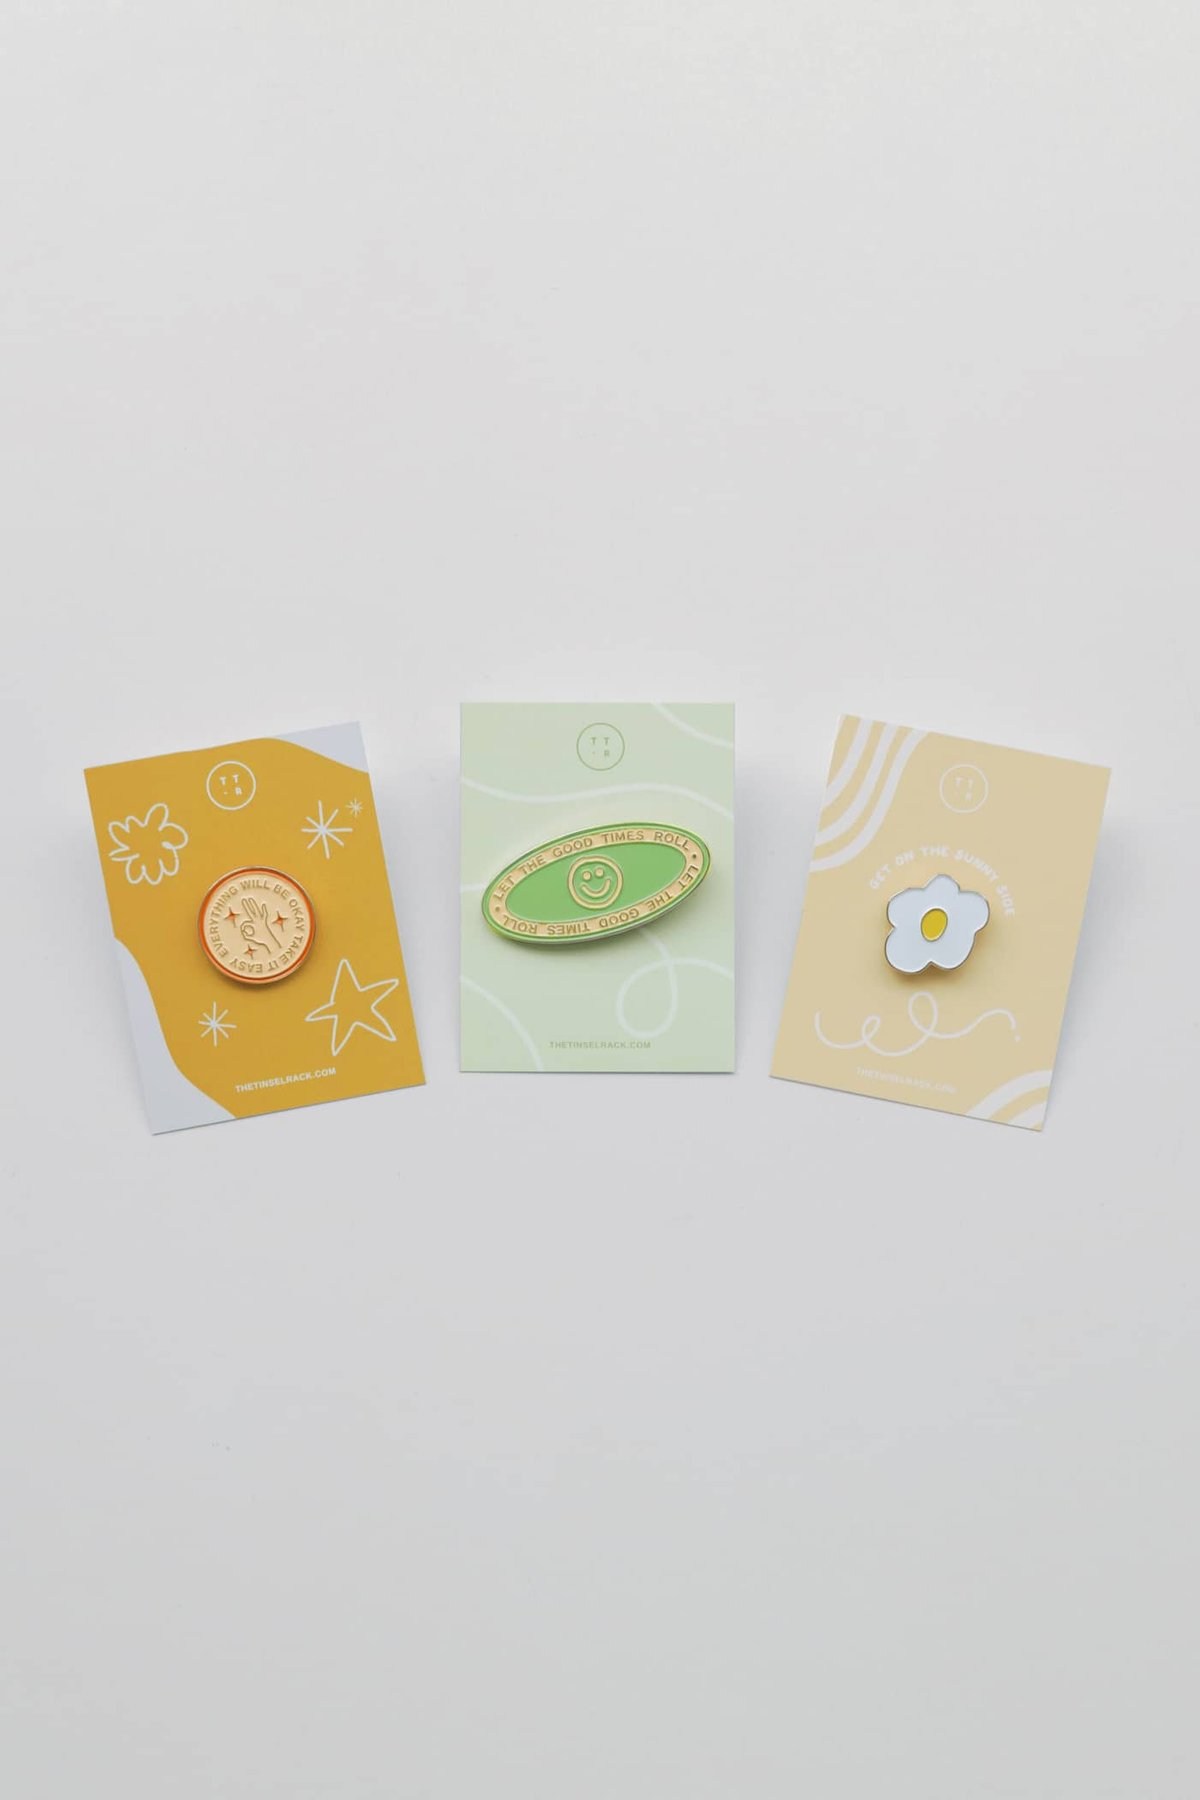 Good Times Only Enamel Pins (Set of 3)